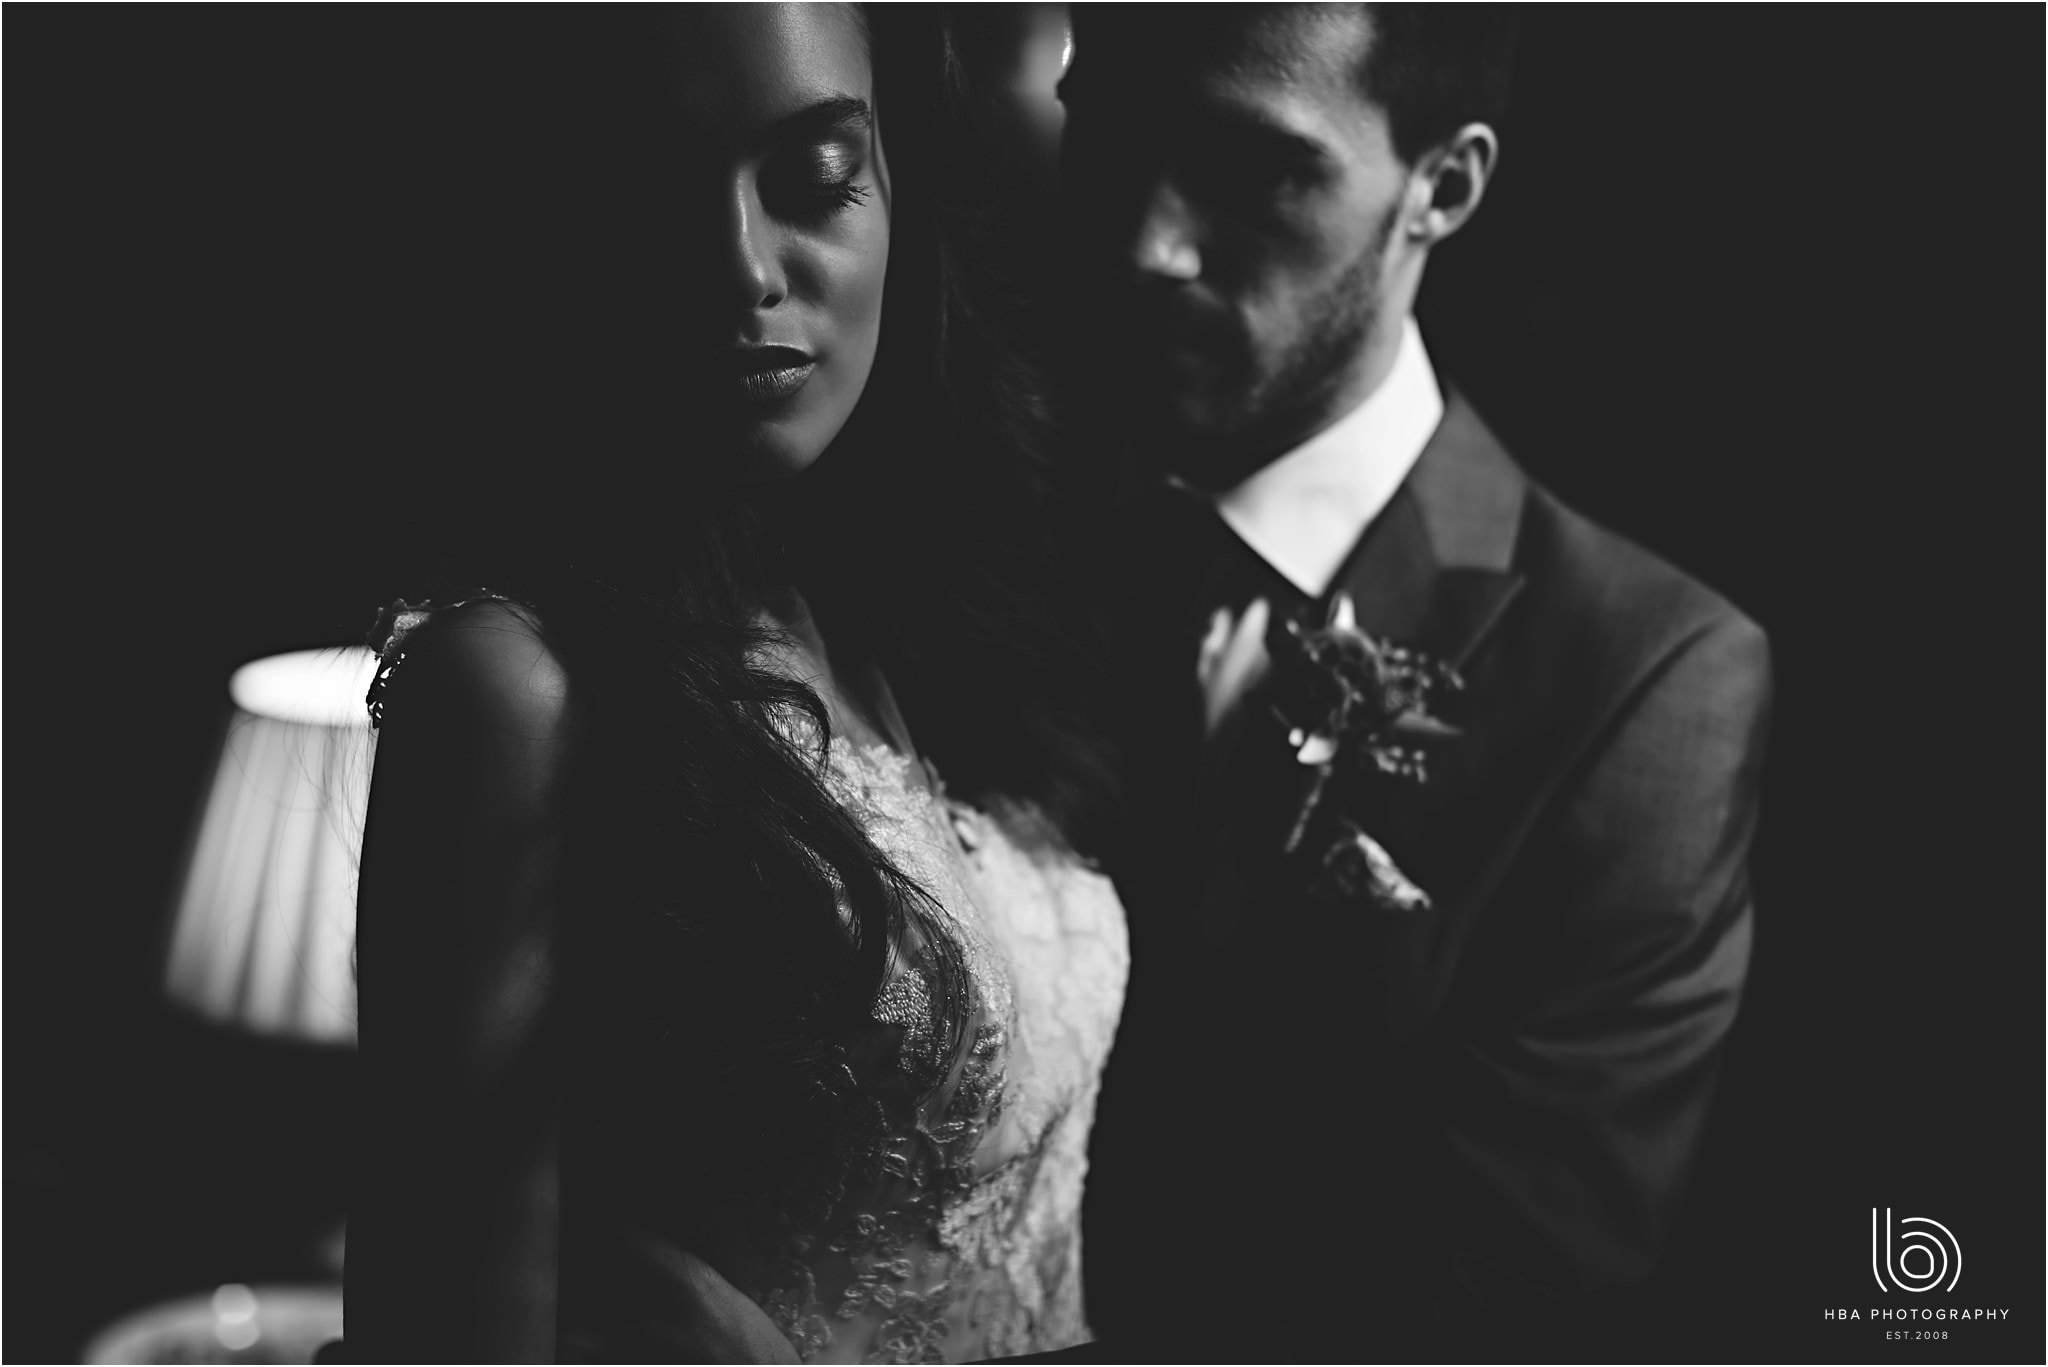 a dark portrait with a bride and groom